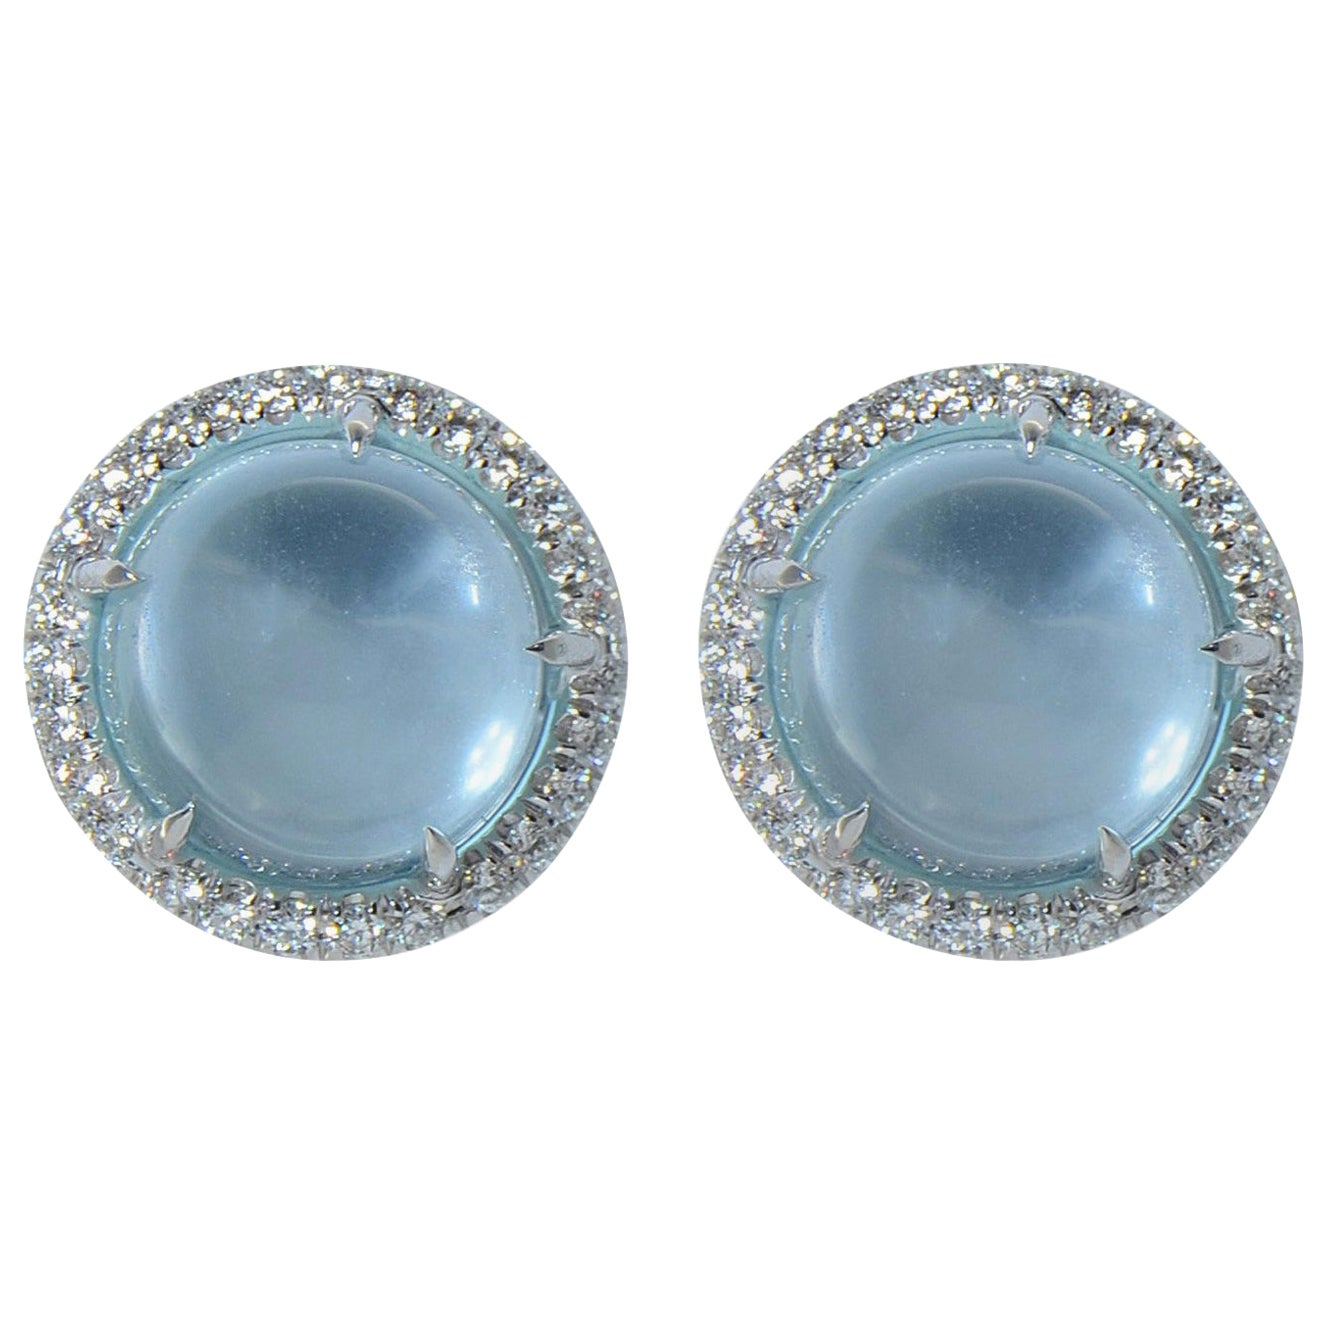 Diamond Cabochon Blue Topaz 18 KT White Gold Earrings Made in Italy